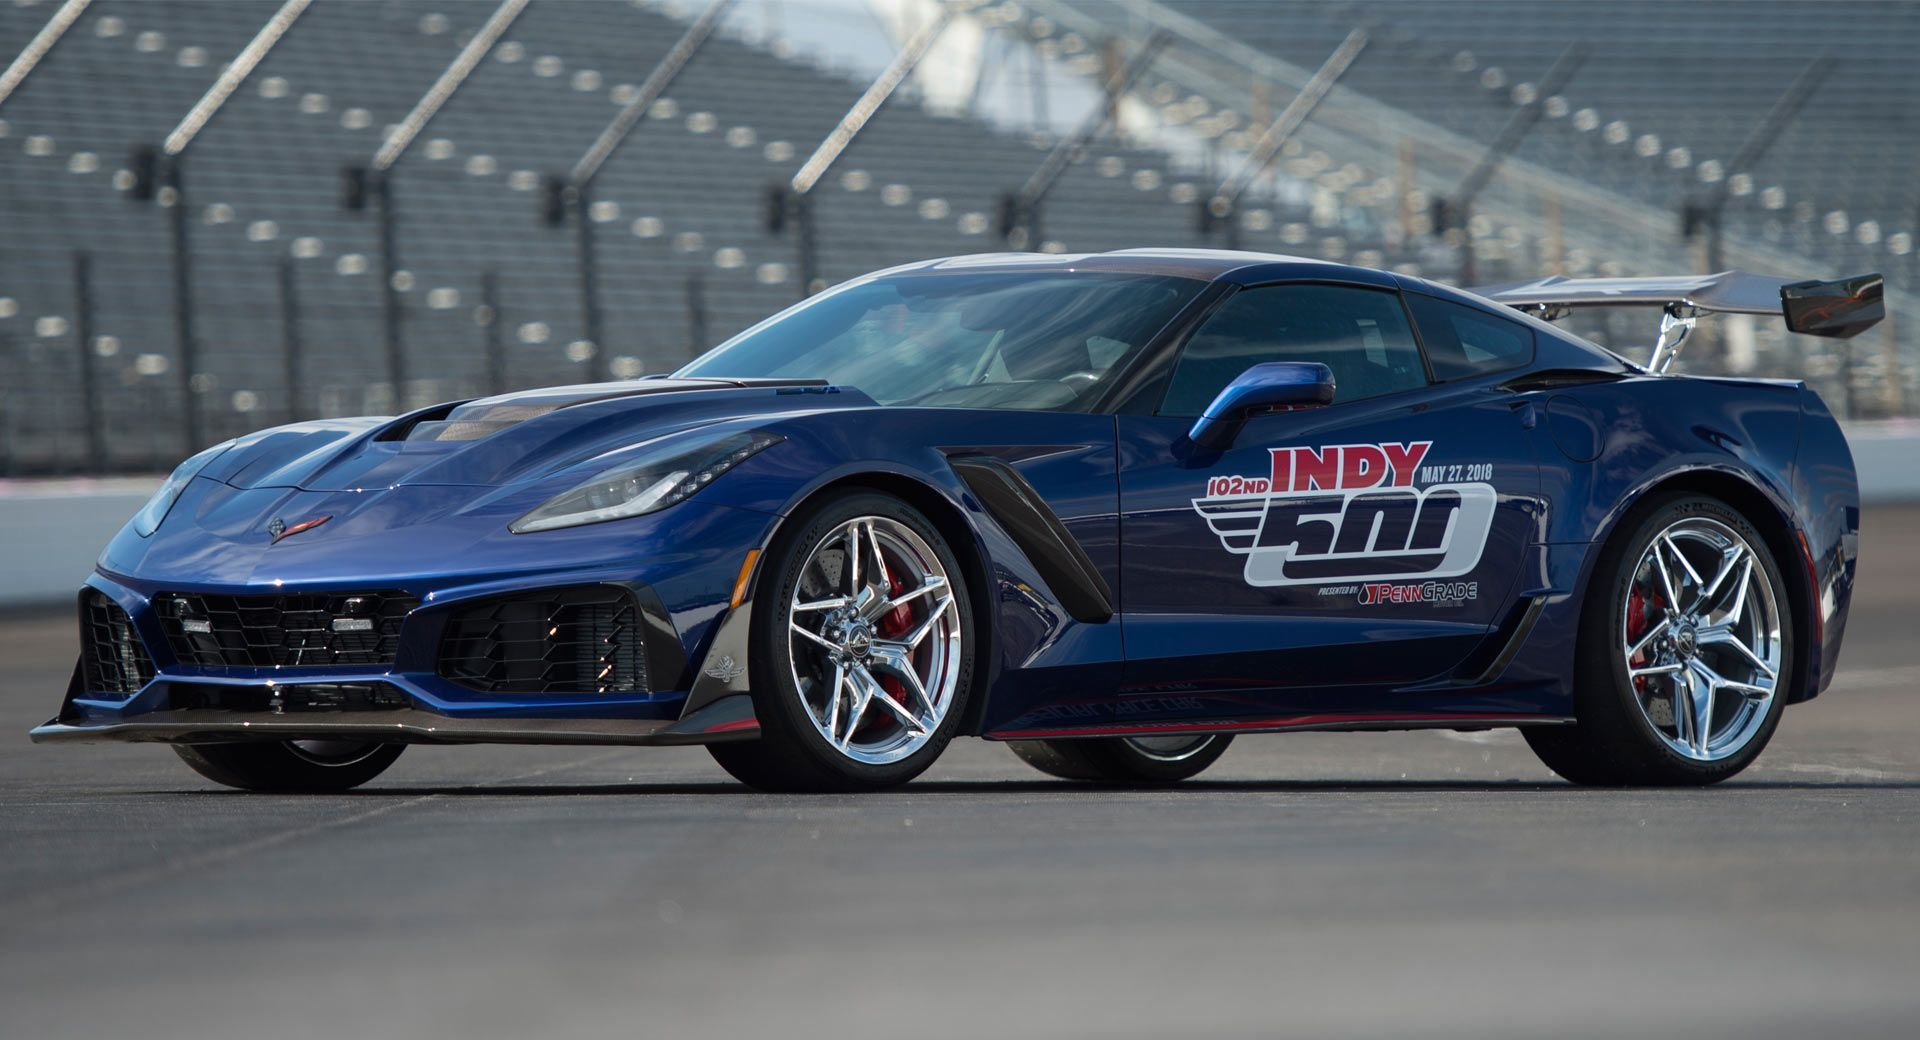 Corvette ZR1 Pace Car Unveiled For The 2018 Indianapolis